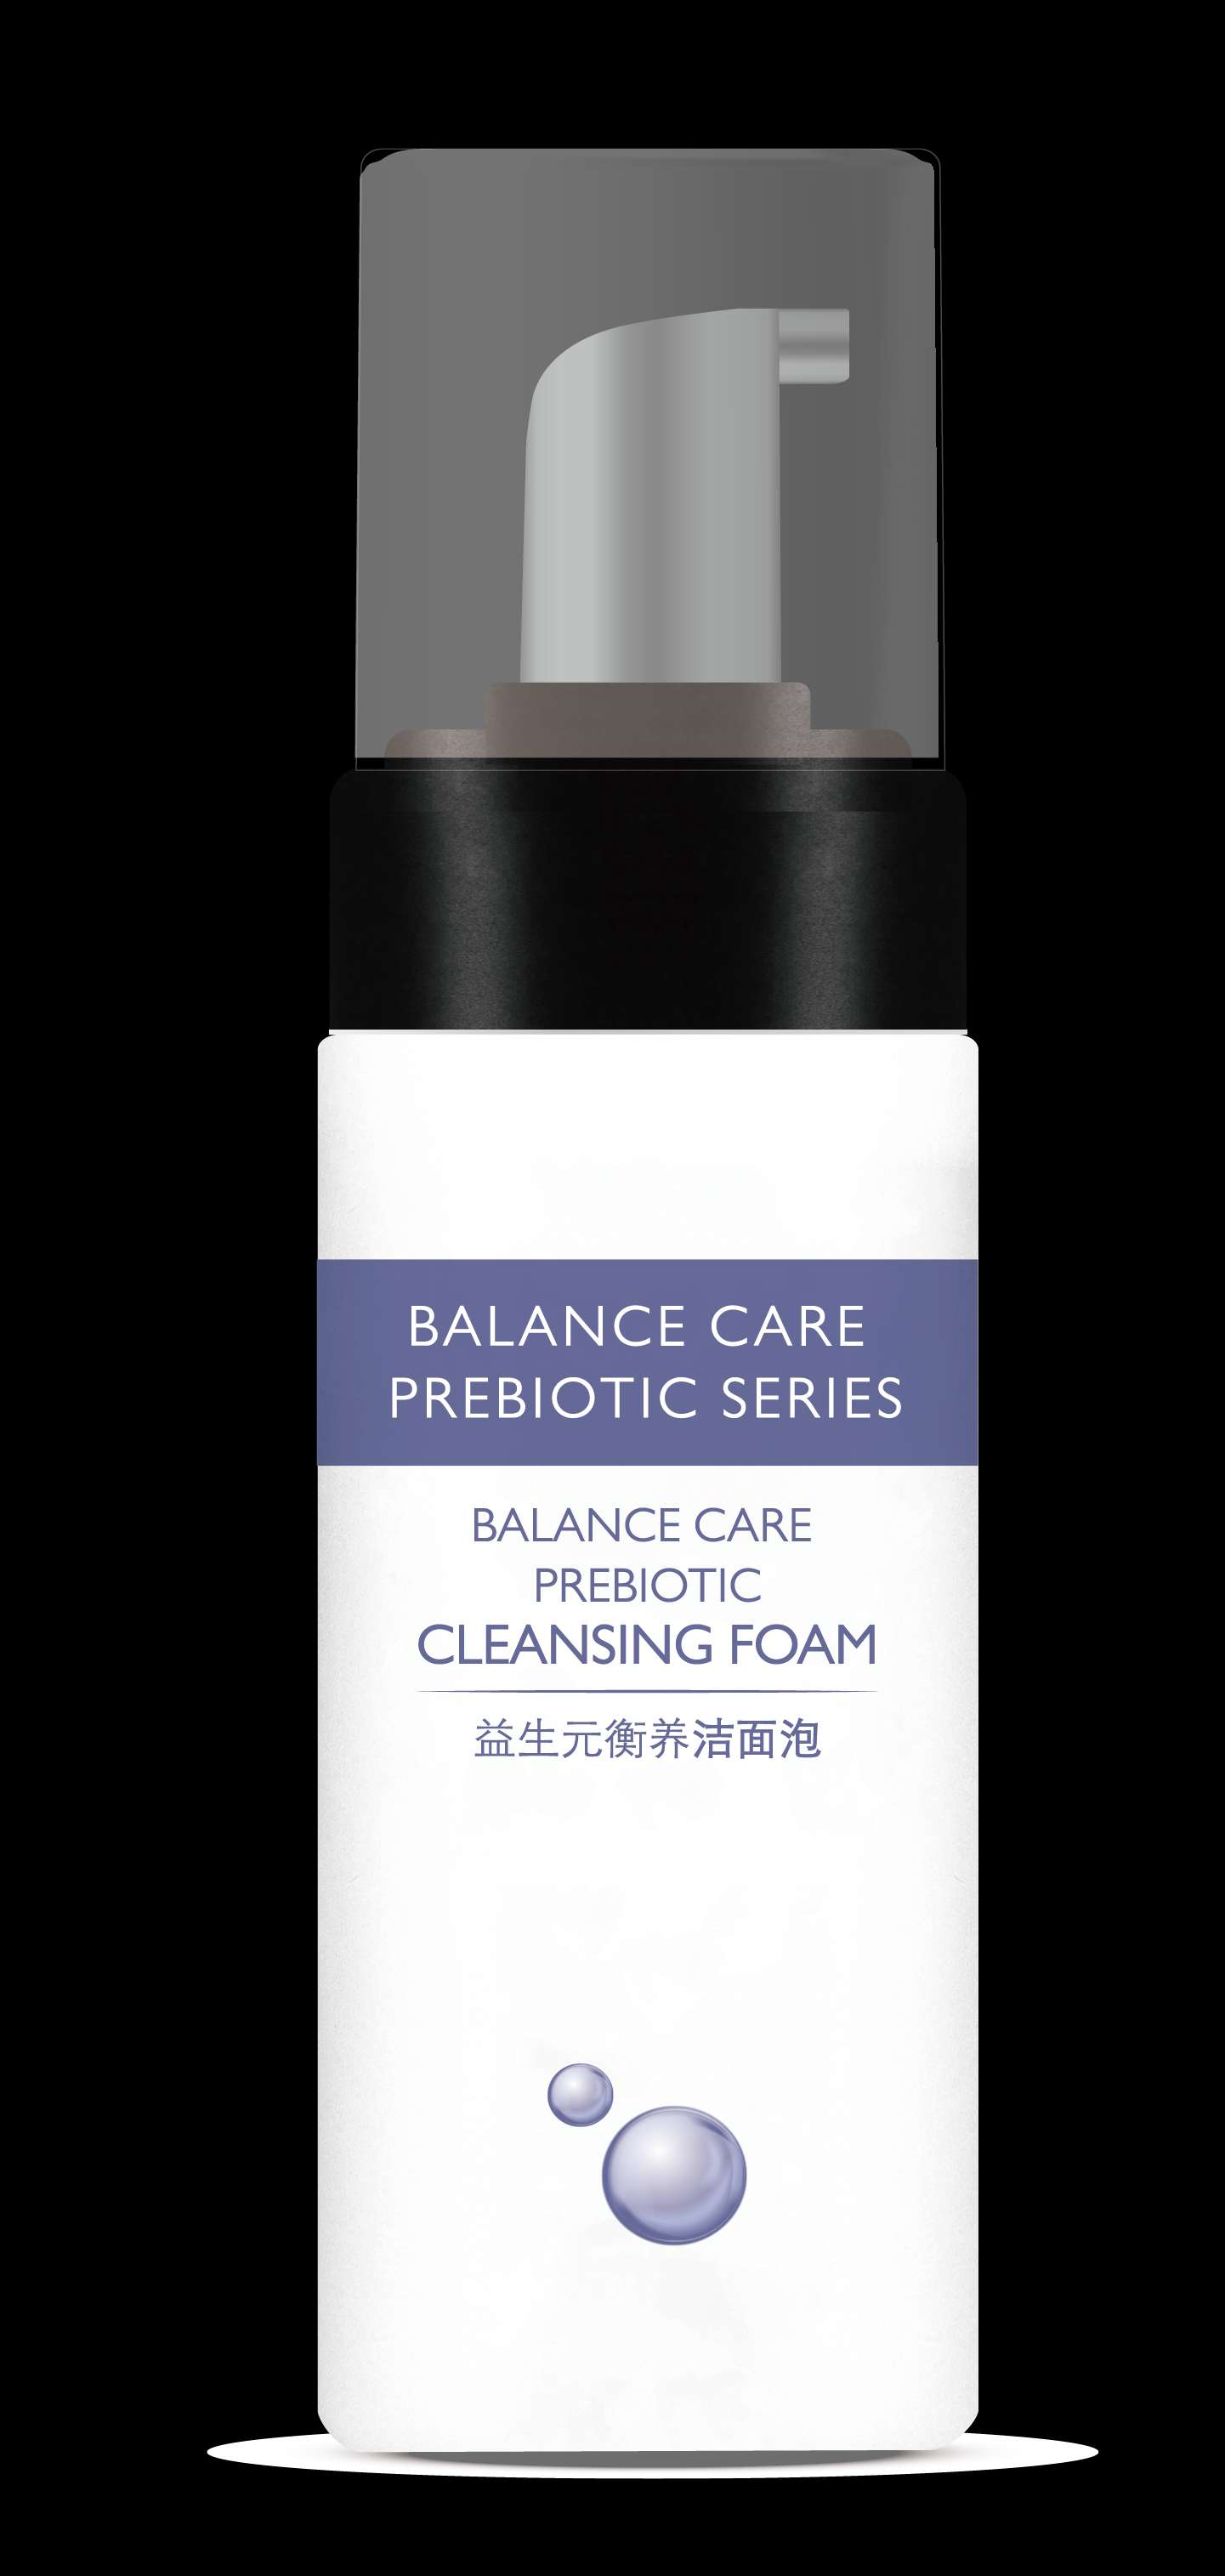 news-NOX BELLCOW-Probiotics that you dont know-img